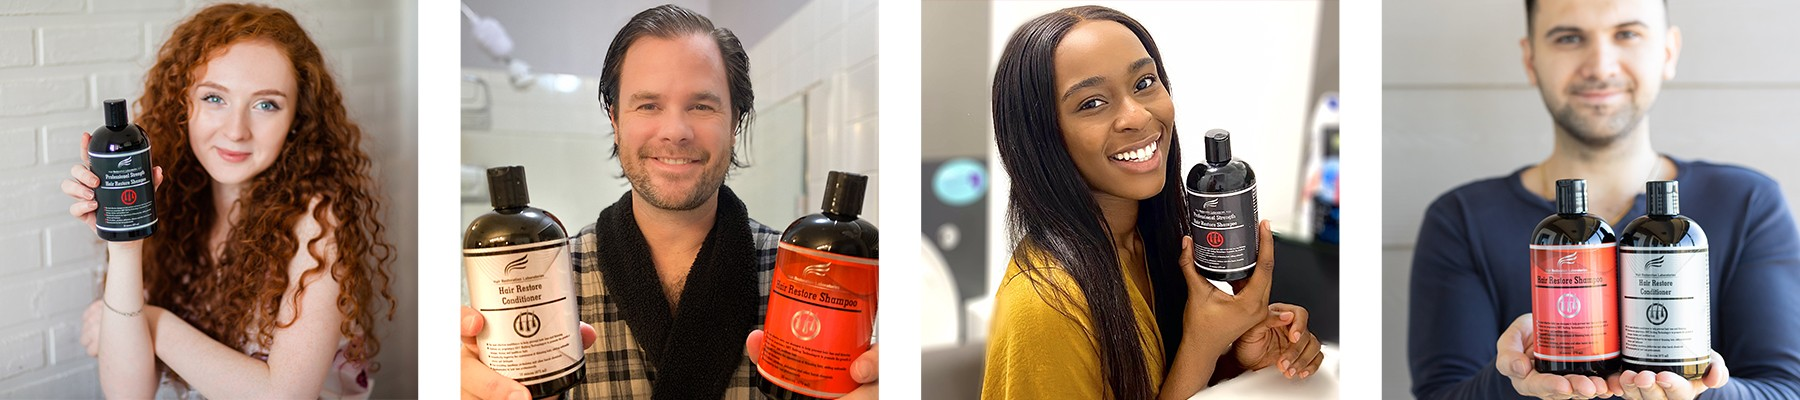 Image of multiple happy people using Hair Restoration Laboratories products